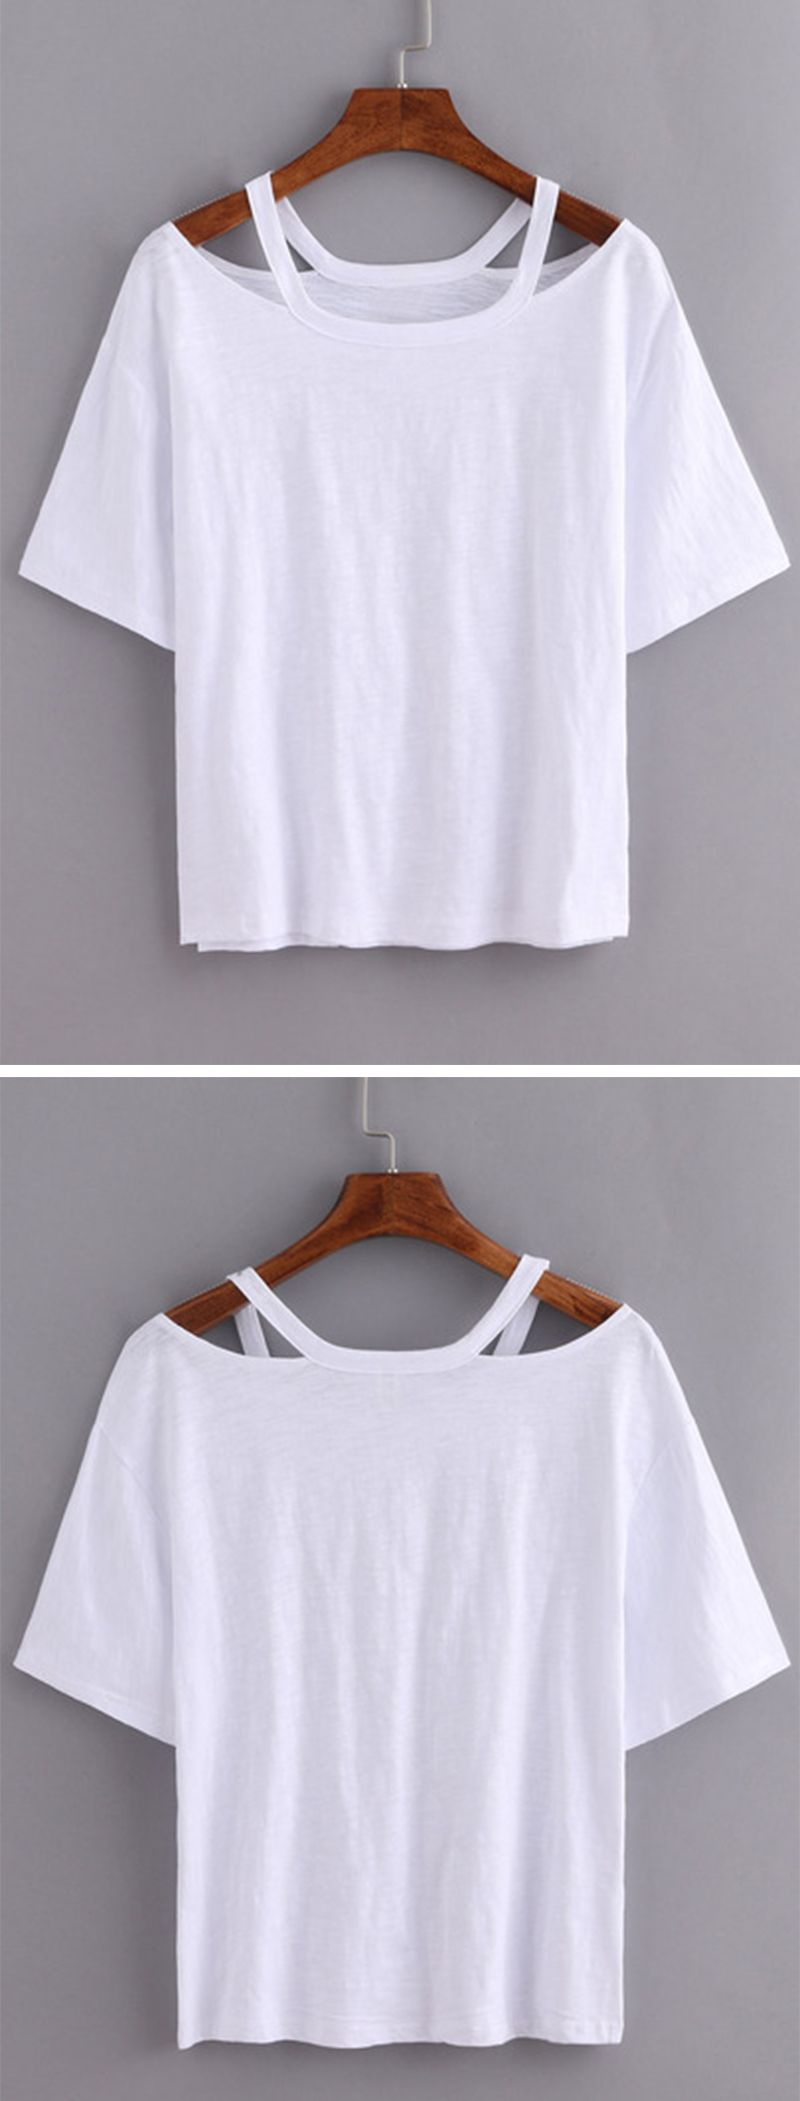 Exceptionnel Cutout Loose-Fit White T-shirt with <3 from JDzigner www.jdzigner  EZ02